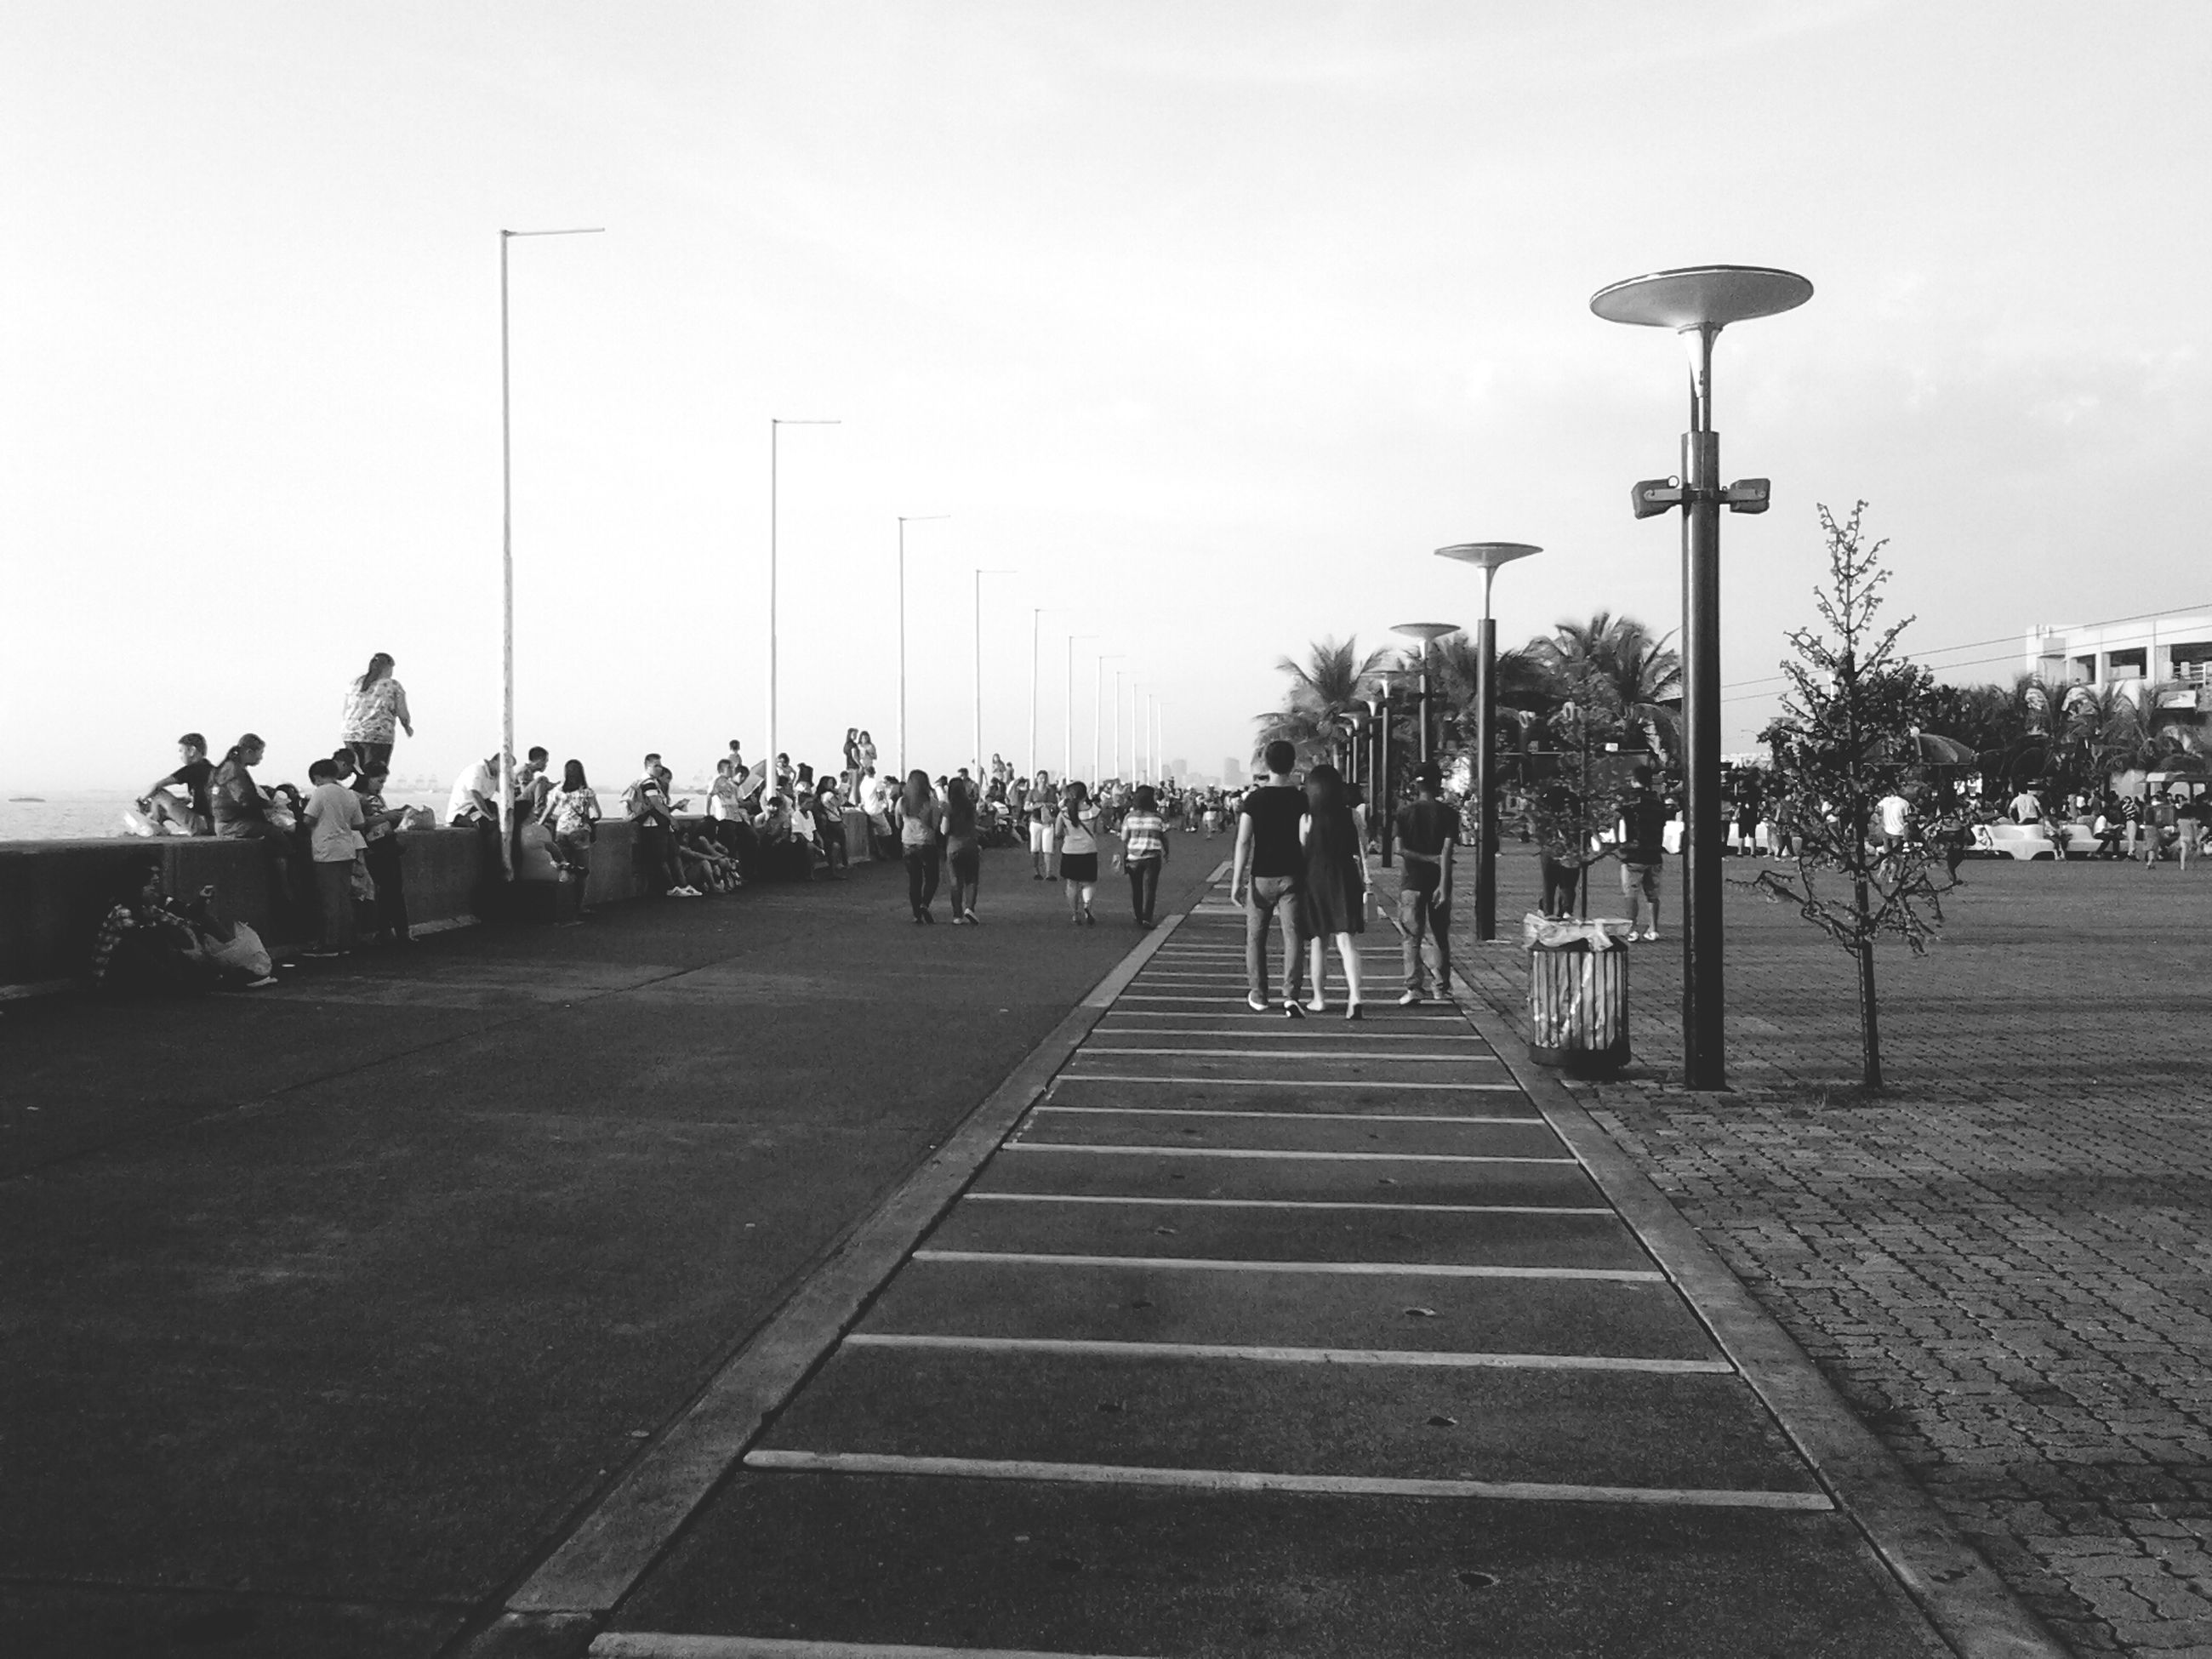 street light, men, sky, person, large group of people, lifestyles, leisure activity, the way forward, tree, walking, street, clear sky, city, footpath, city life, outdoors, mixed age range, park - man made space, lighting equipment